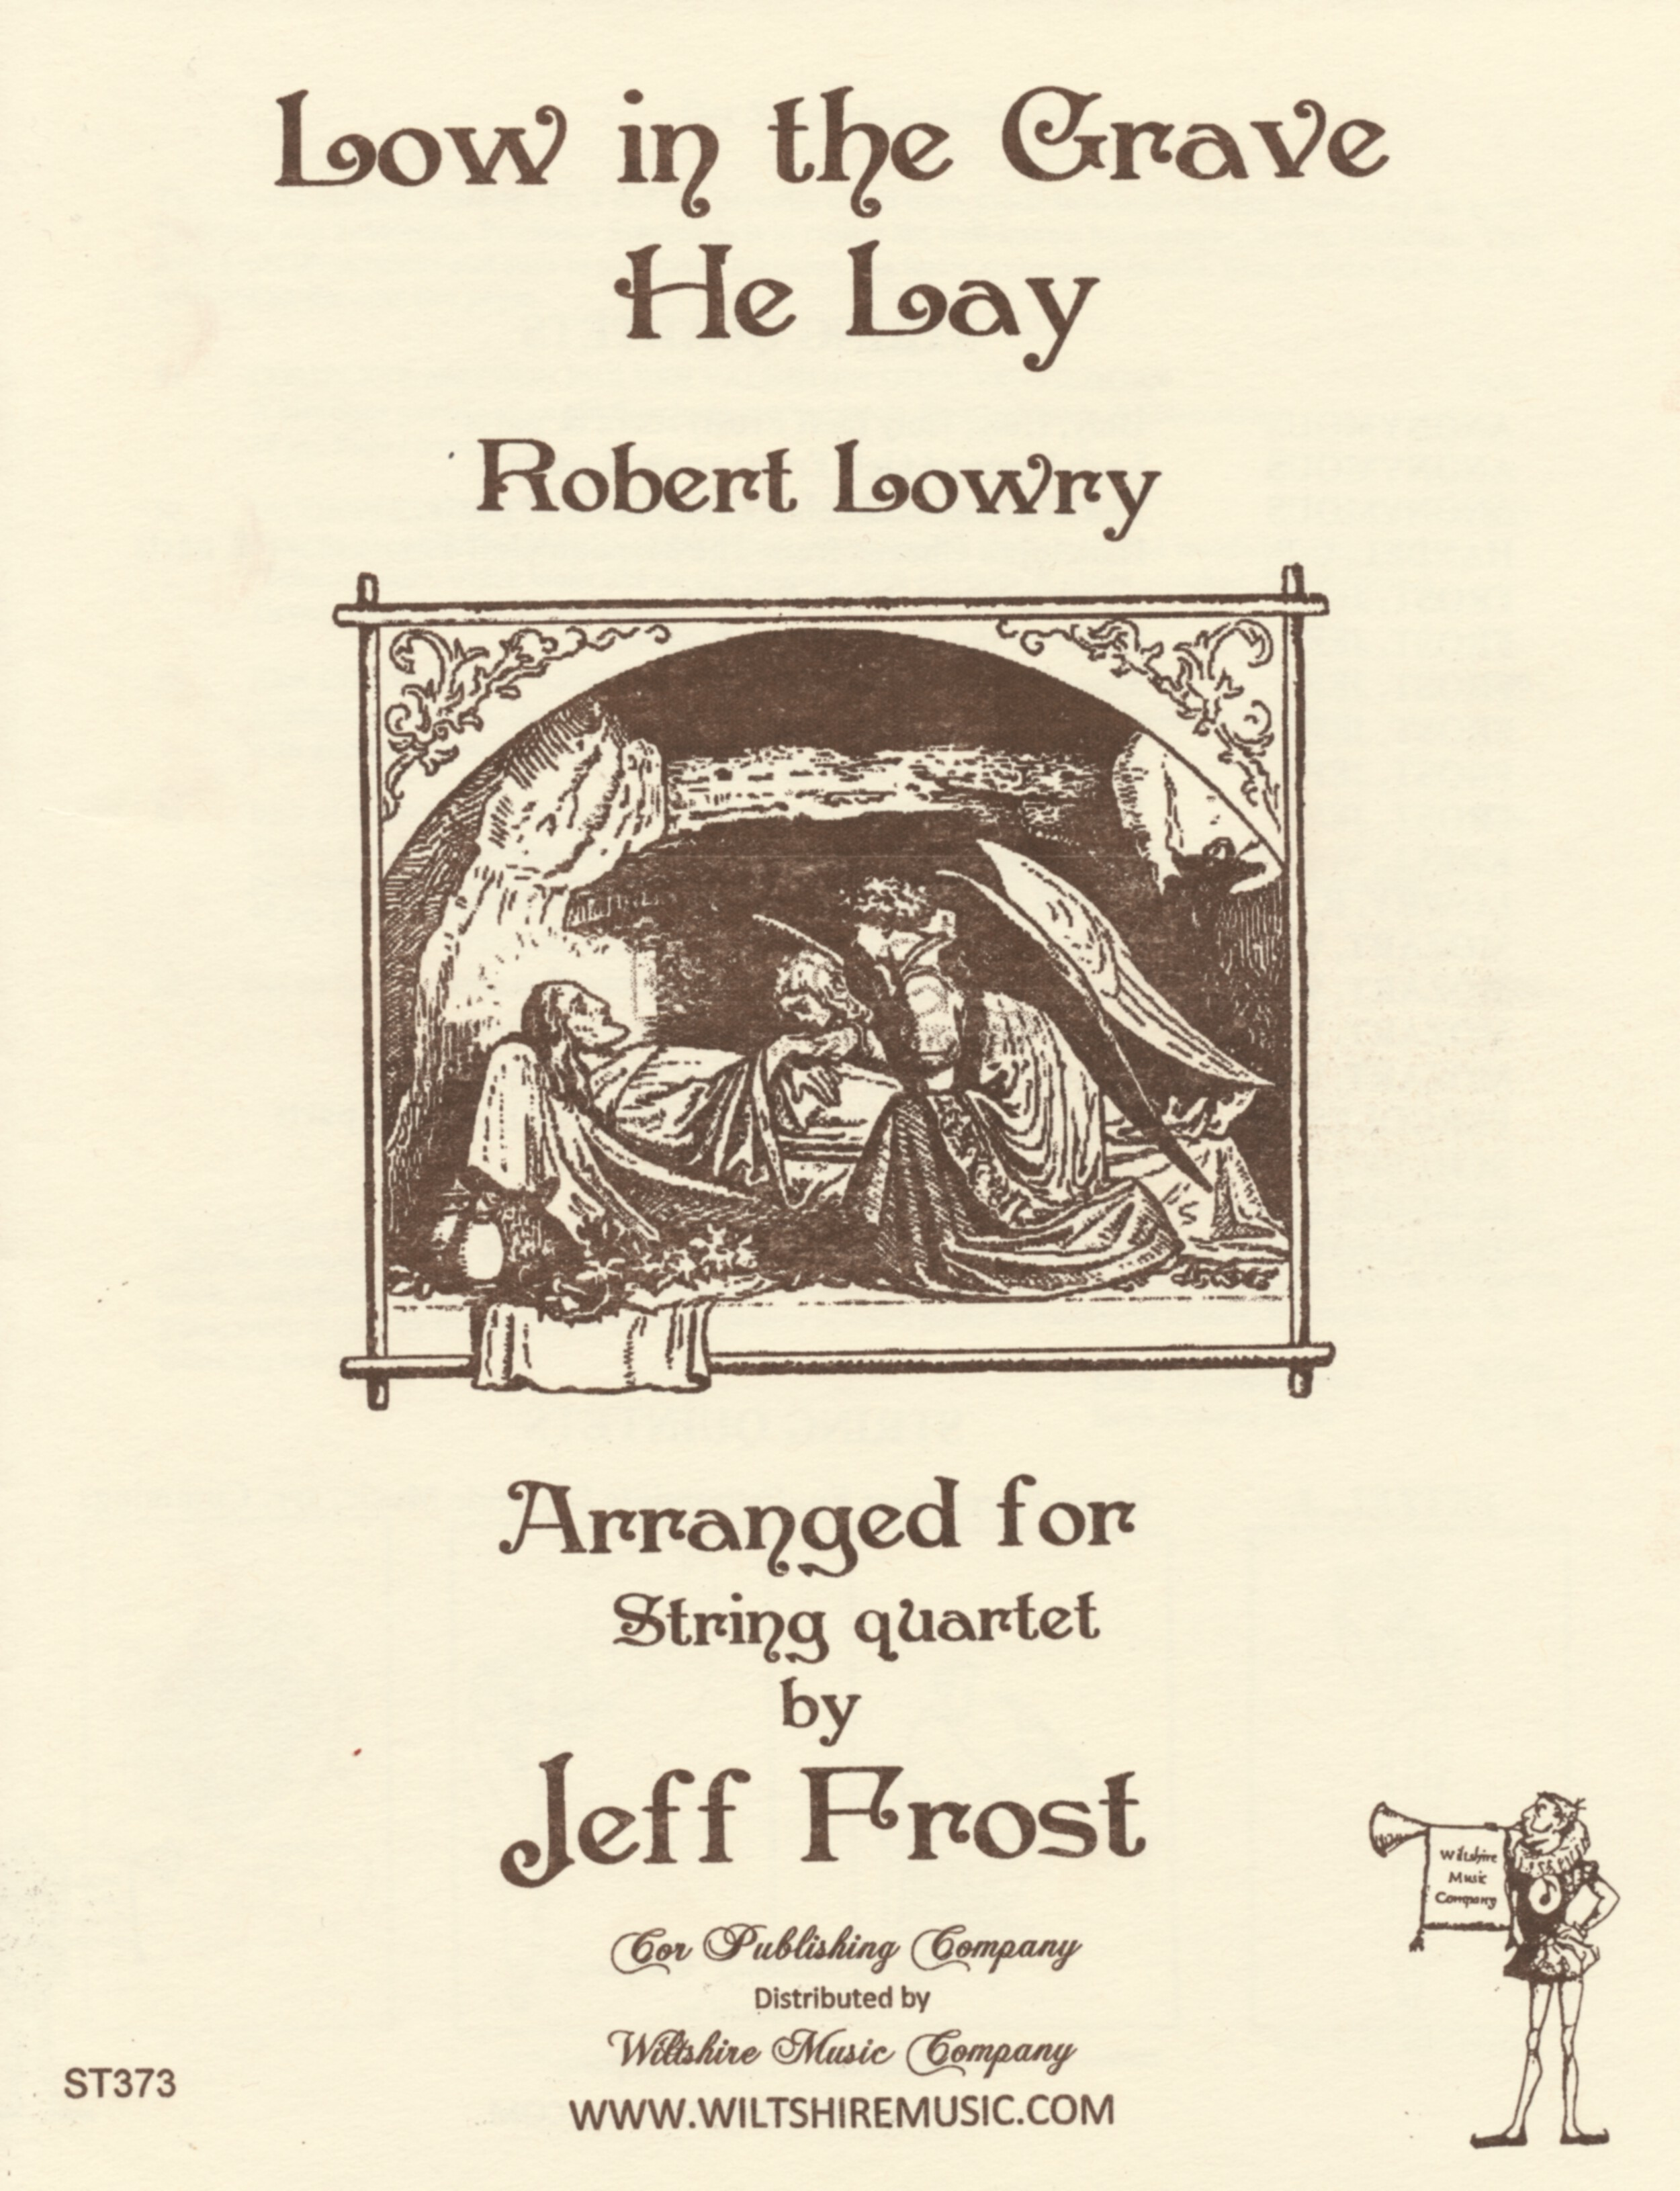 Low in the Grave, Robert Lowry, arr. Jeff Frost